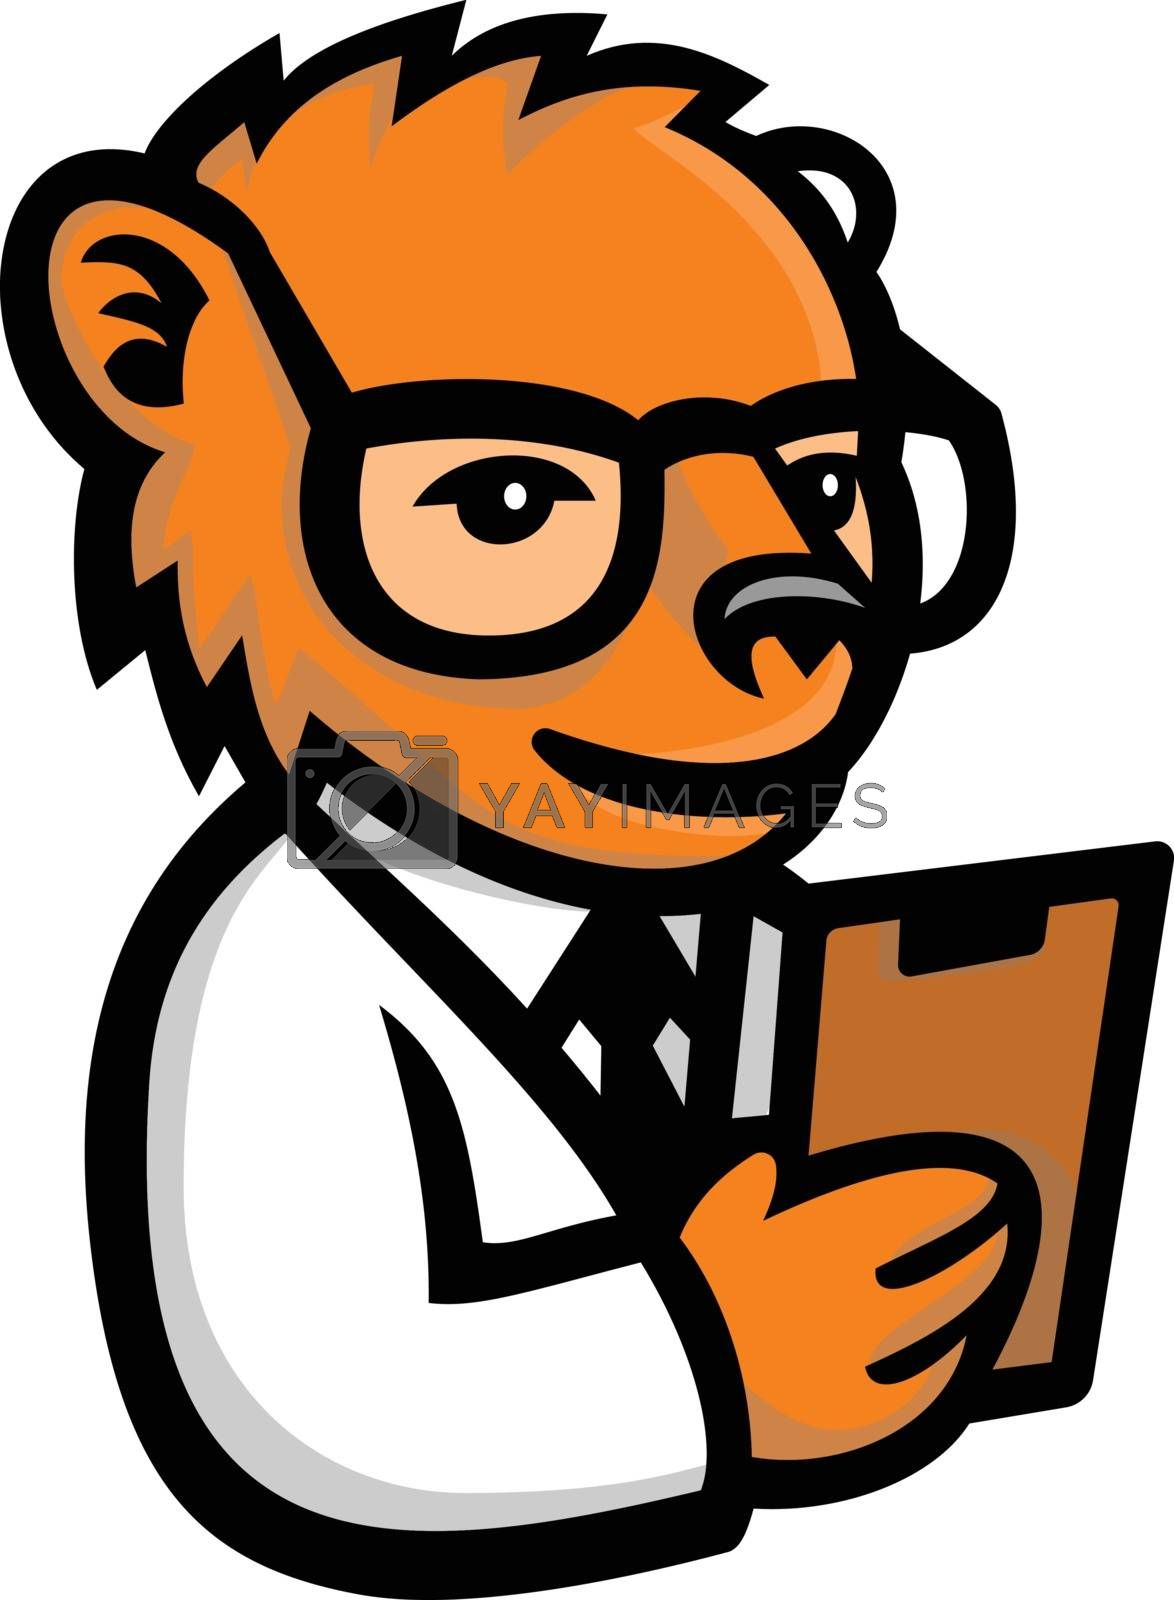 Mascot icon illustration of a nerdy bear scientist wearing lab coat and holding clipboard viewed from   on isolated background in retro style.